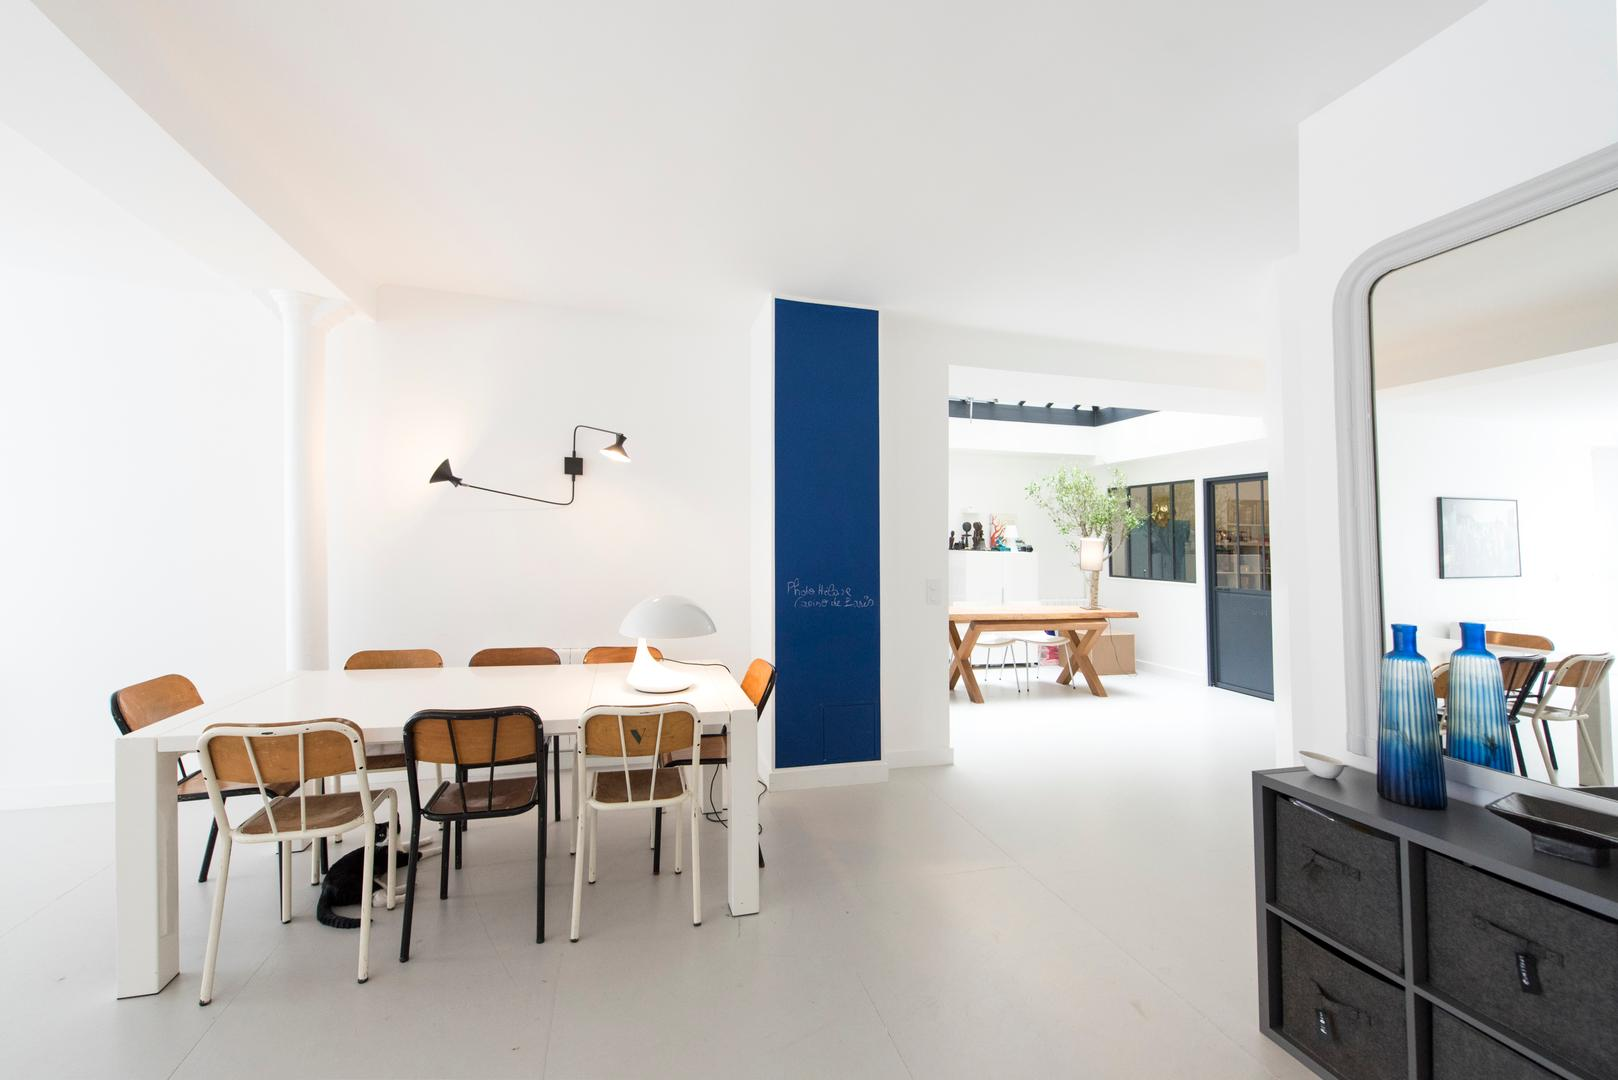 Property Image 2 - Contemporary Chic Flat with Minimalist Furnishings